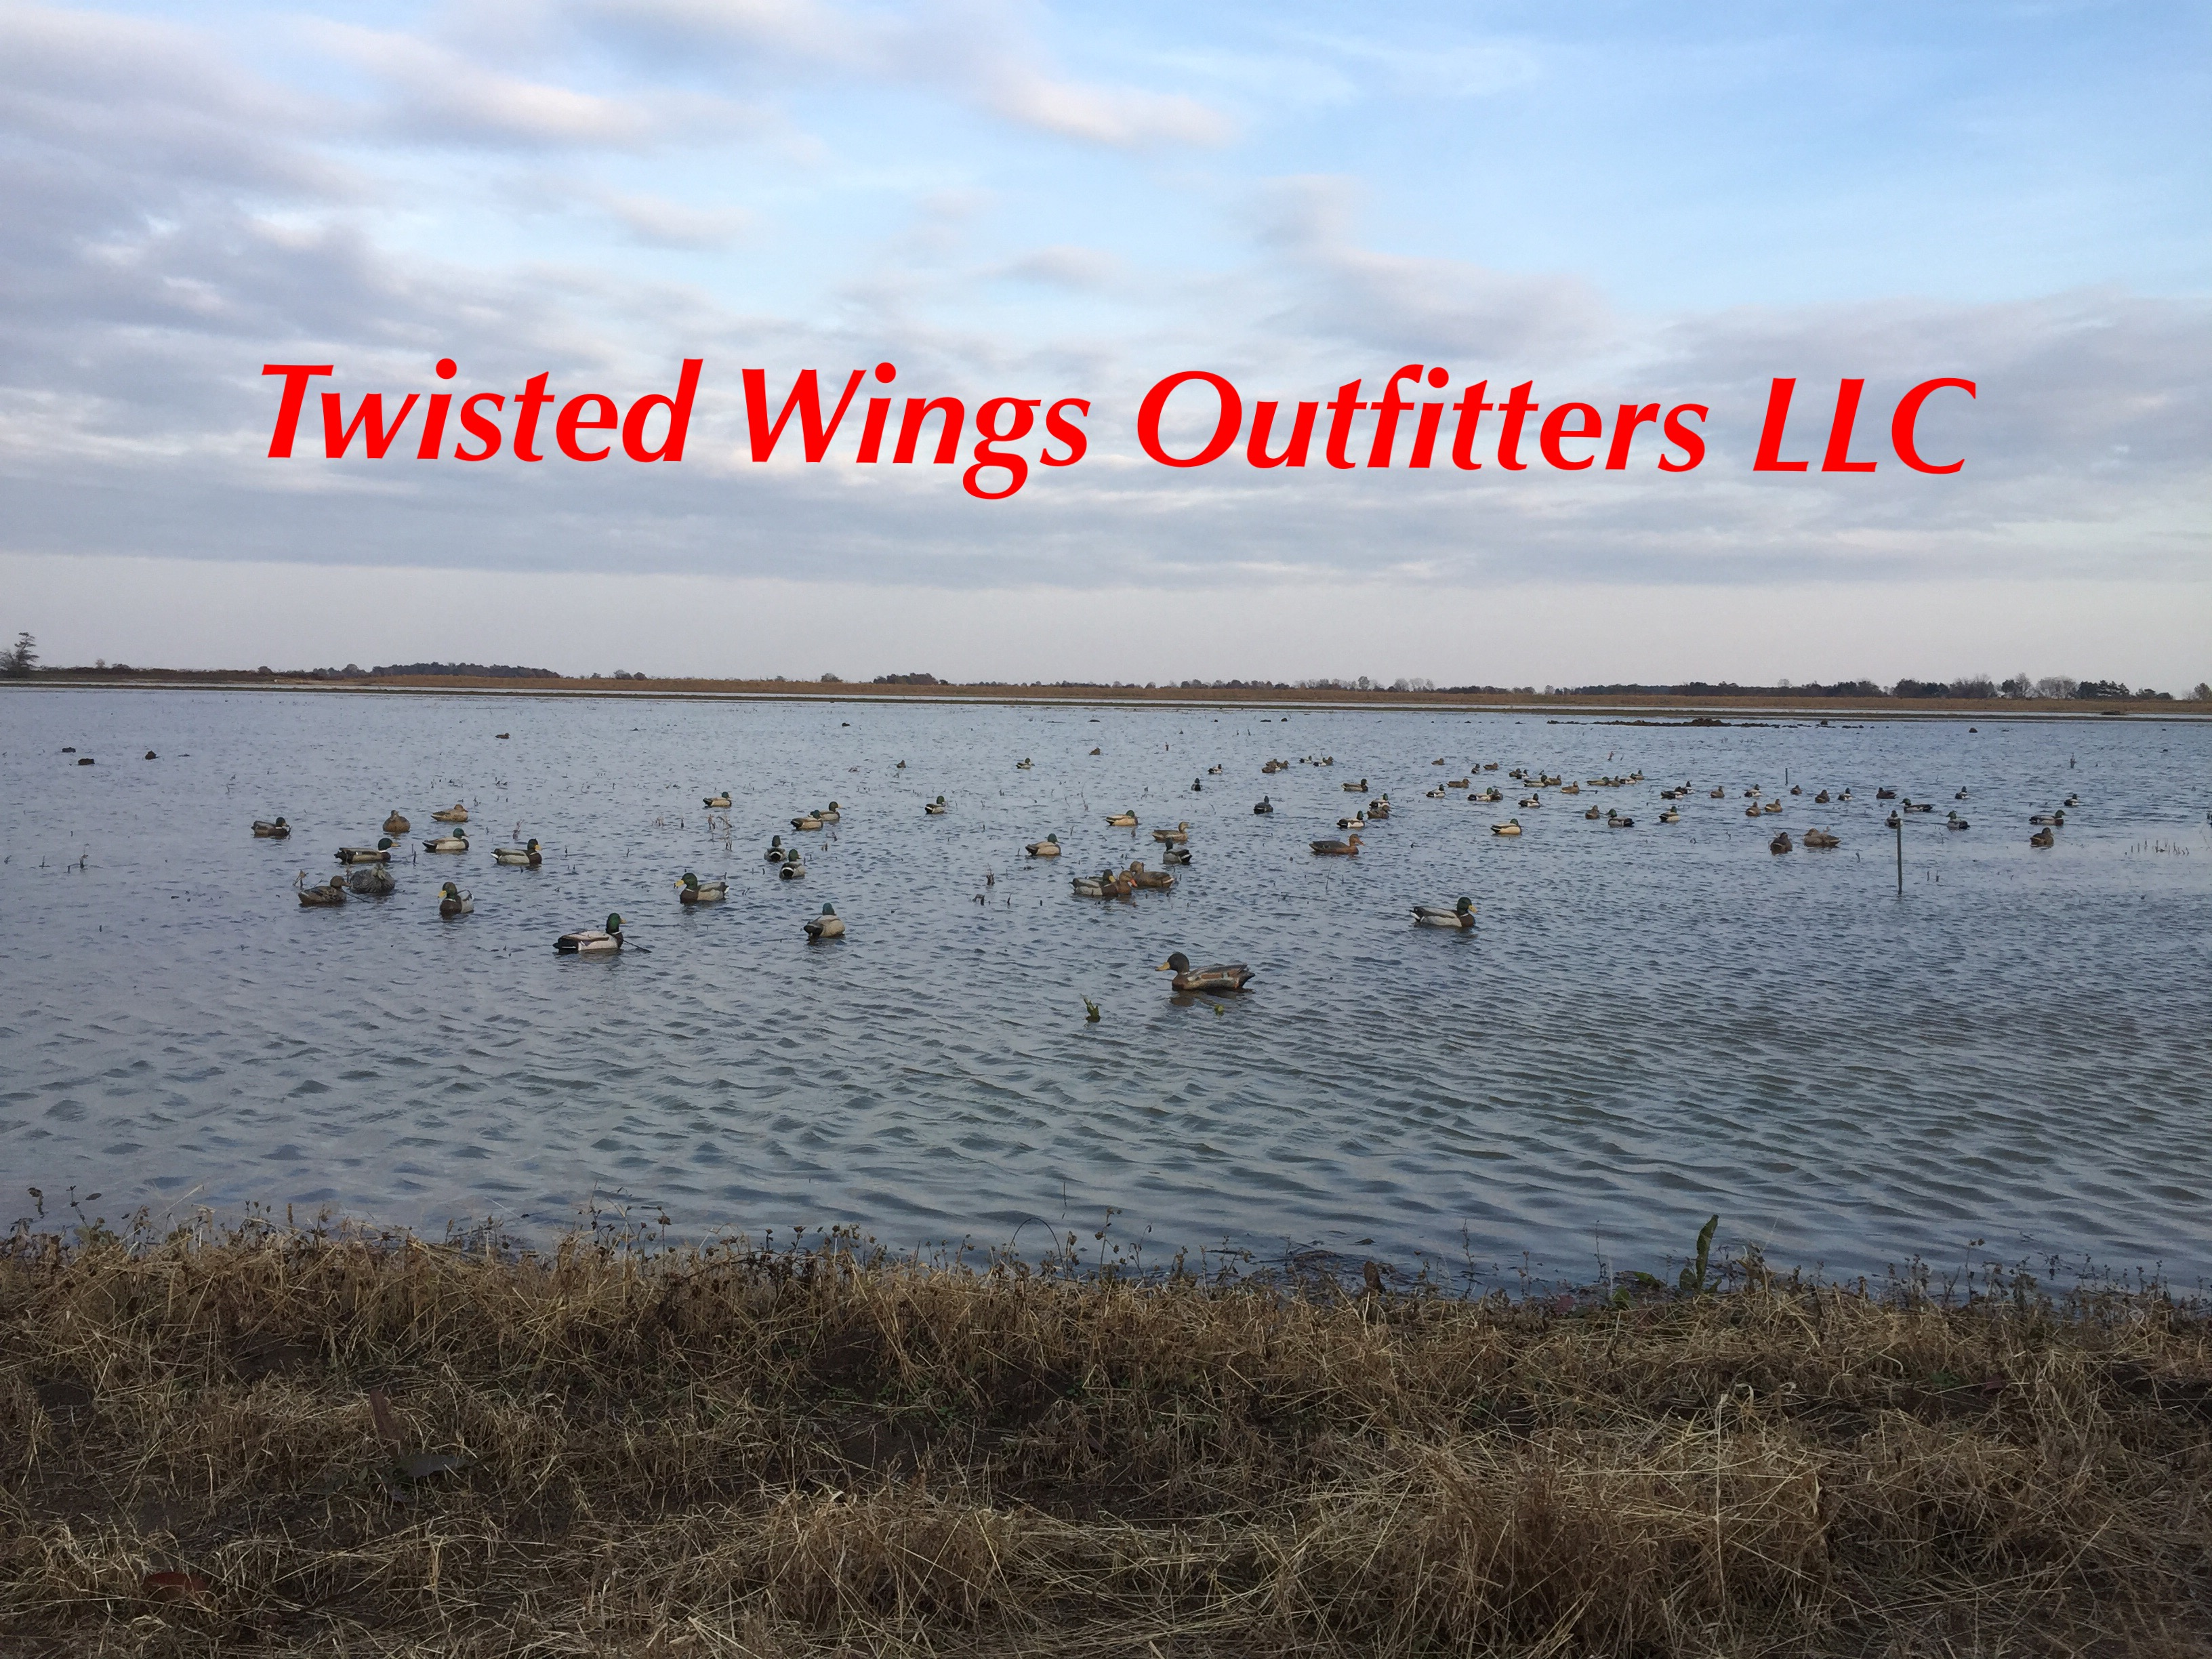 twisted-wings-outfitters-15479320561586716314